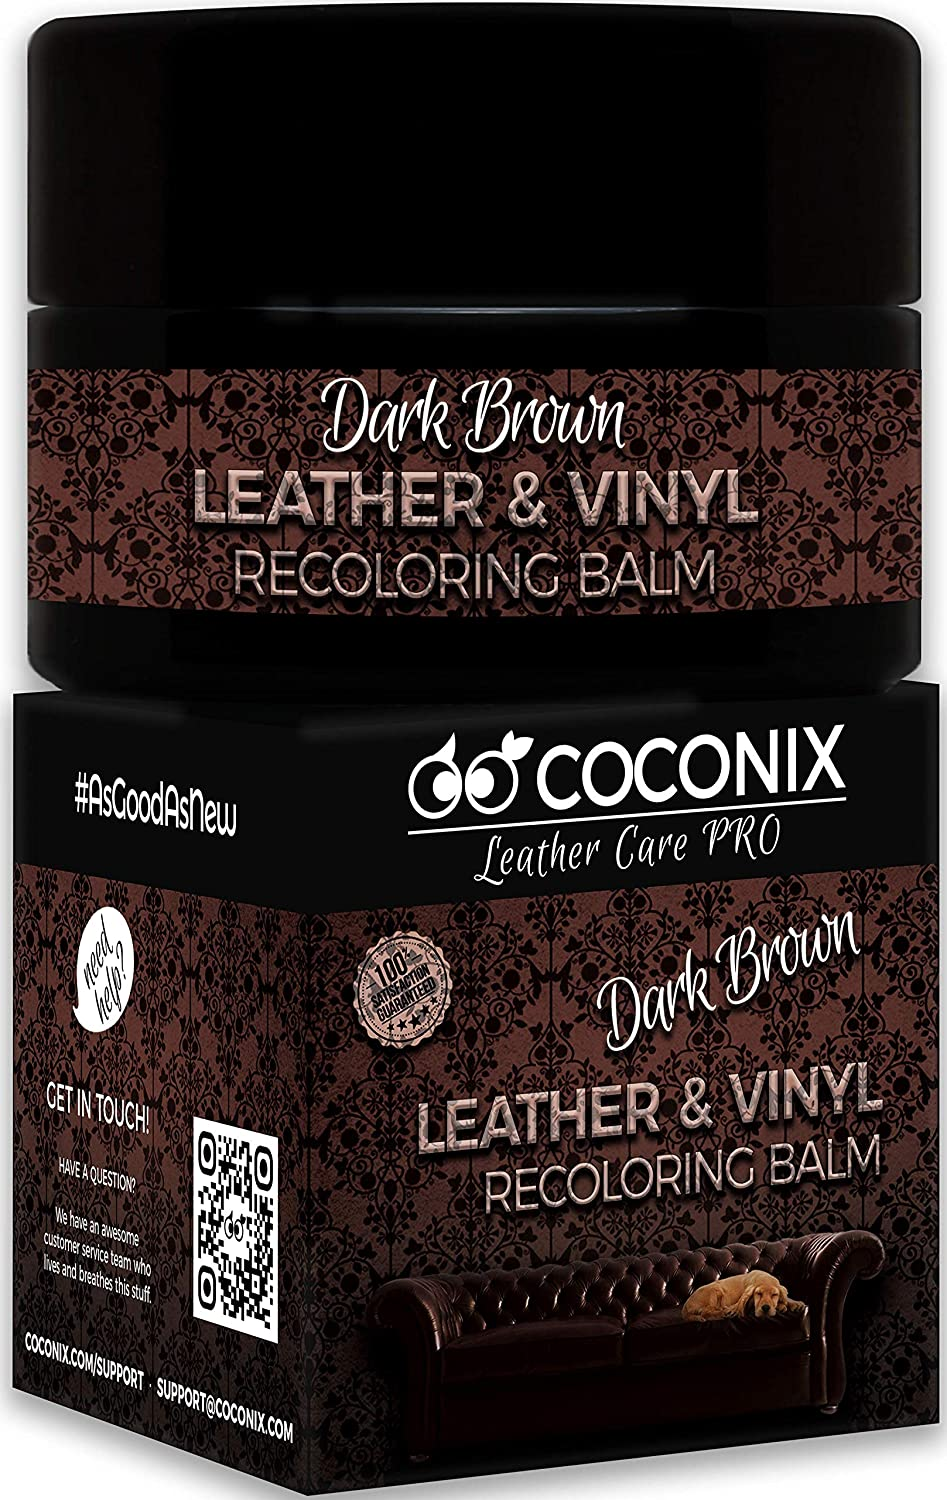 Coconix Leather Recoloring Balm Dark Brown - Recolor, Renew, Repair & Restore Aged, Faded, Cracked, Peeling and Scuffed Leather & Vinyl Couches, Boat or Car Seats, Furniture 8 oz